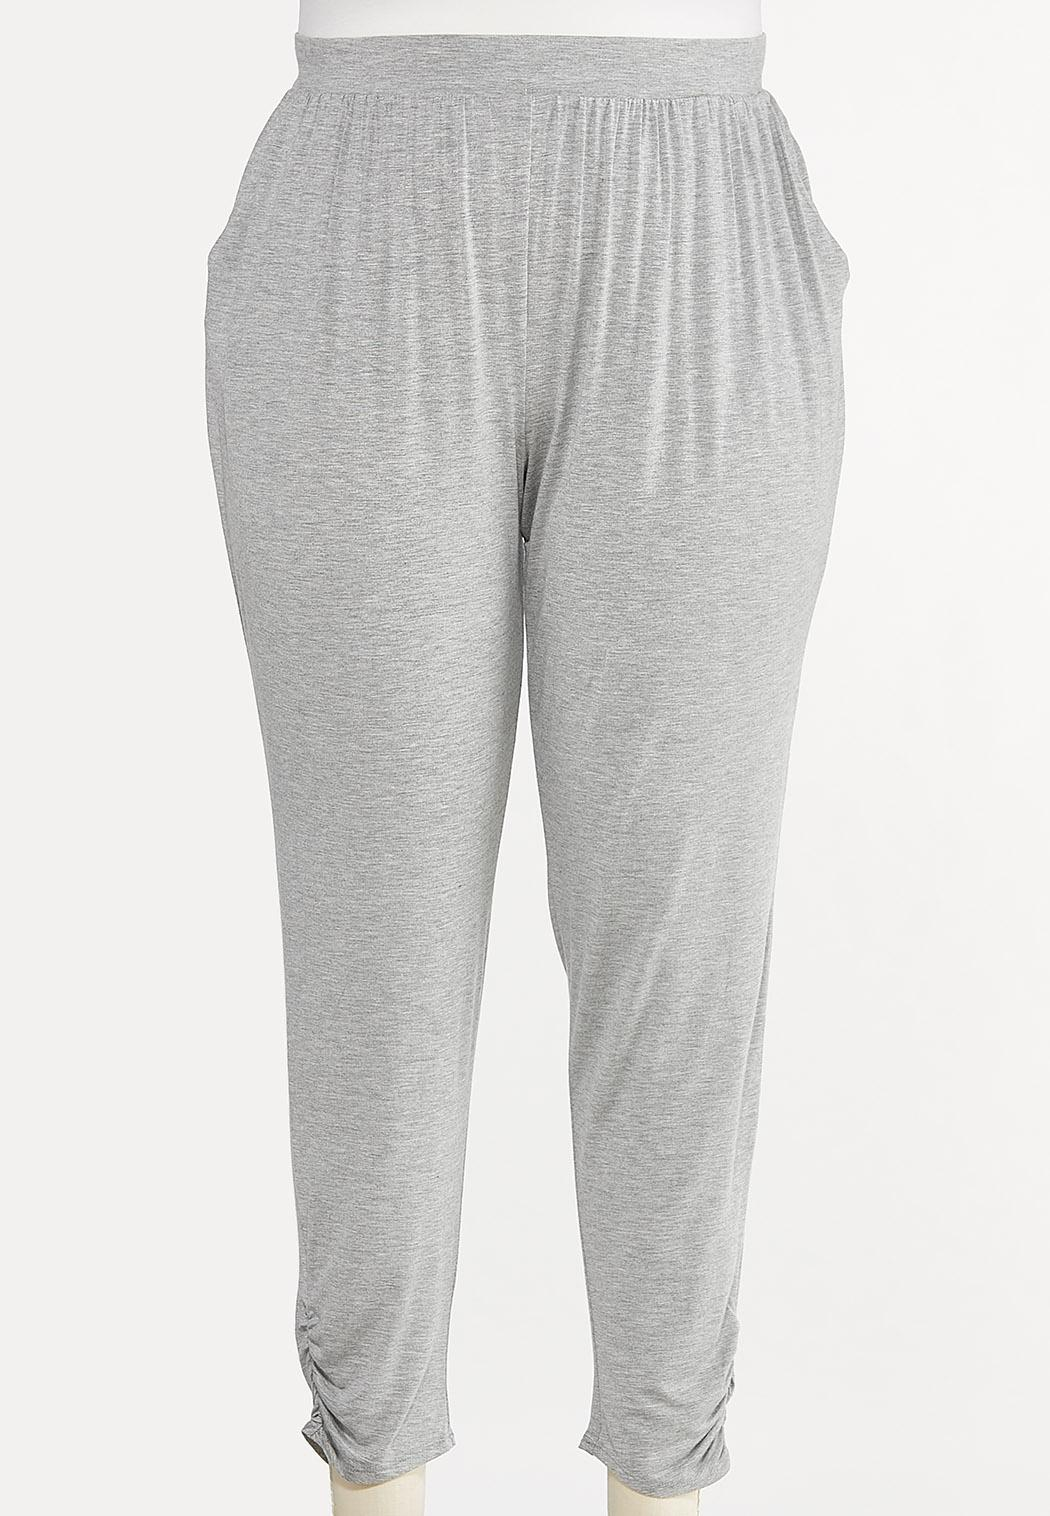 Plus Size Gray Ruched Pants